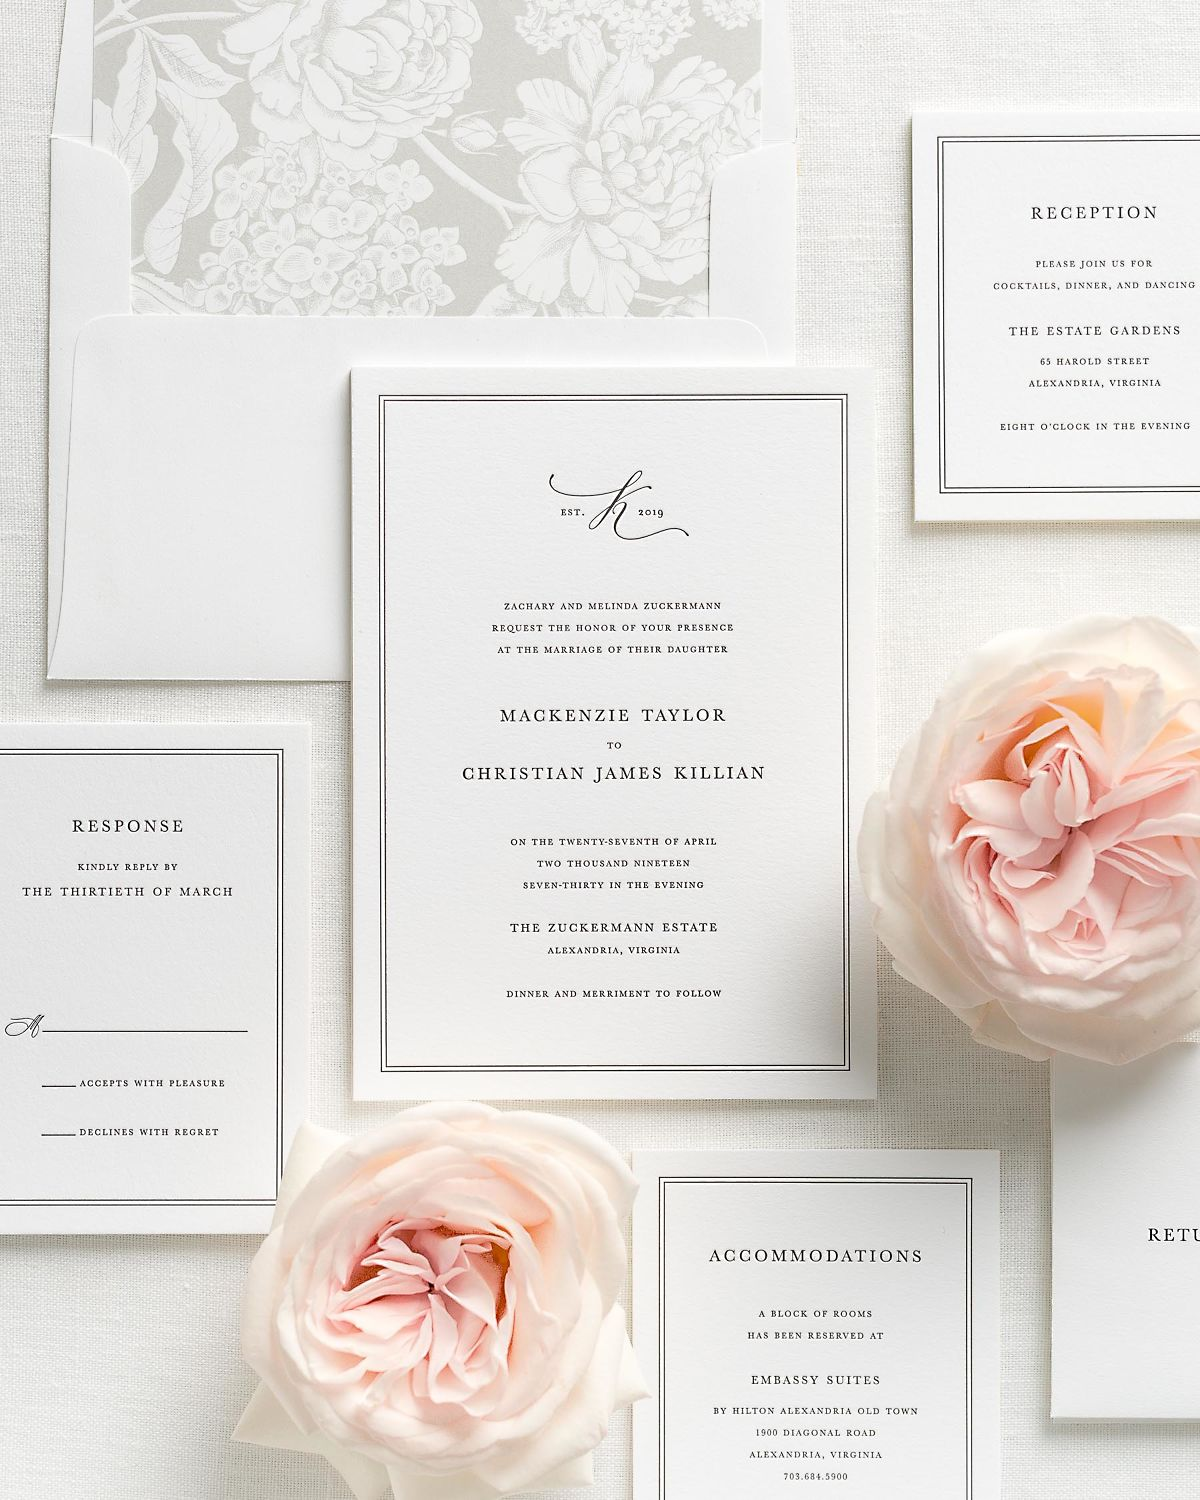 Letterpress Wedding Invitations with Stone Hydrangea Envelope Liner and Matching Accessories